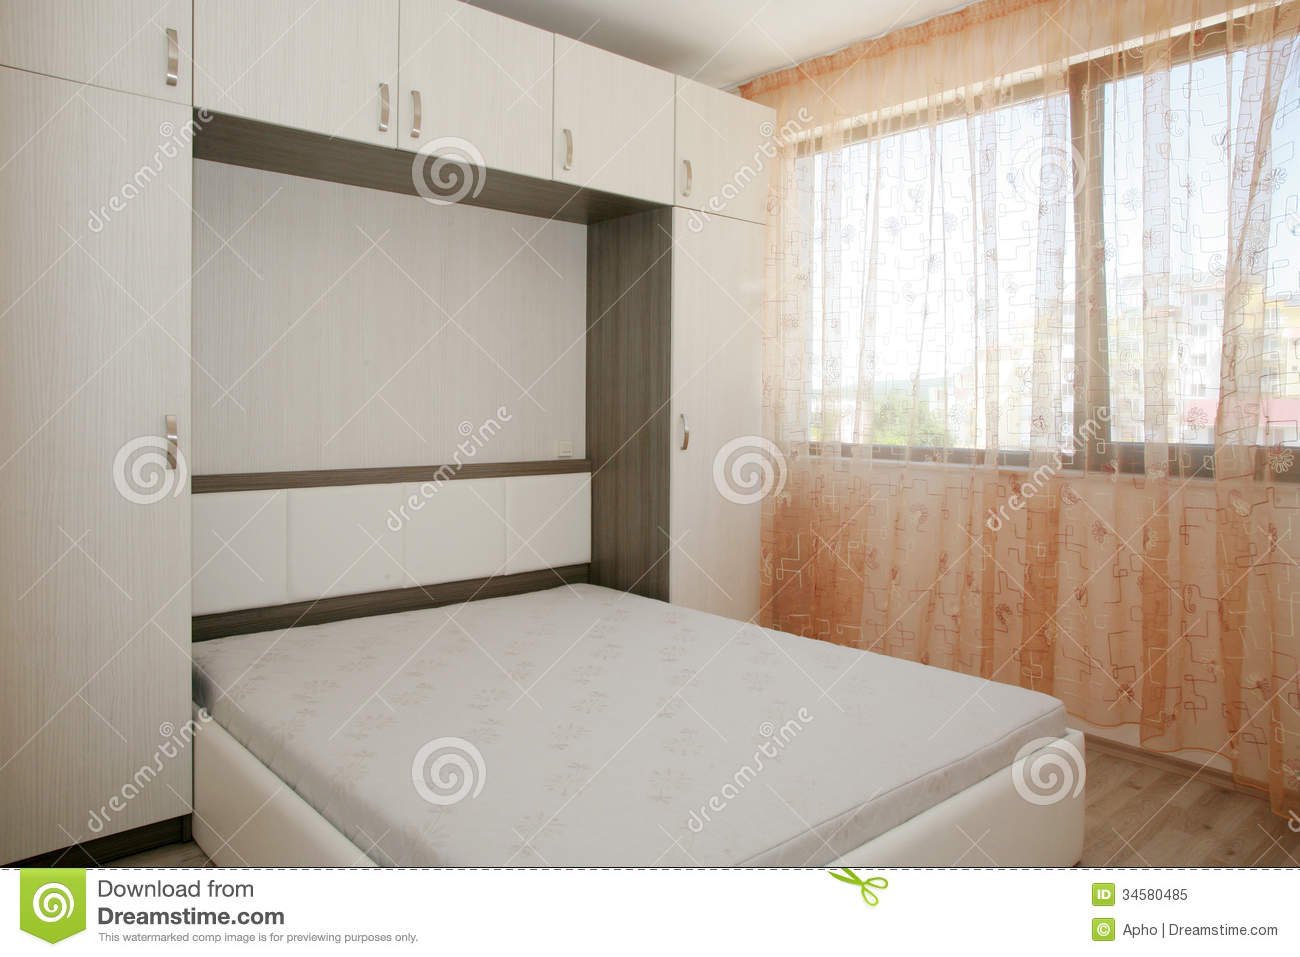 Wardrobes For Small Rooms Bedroom Stock Image Image Of Space Sleep Window Design